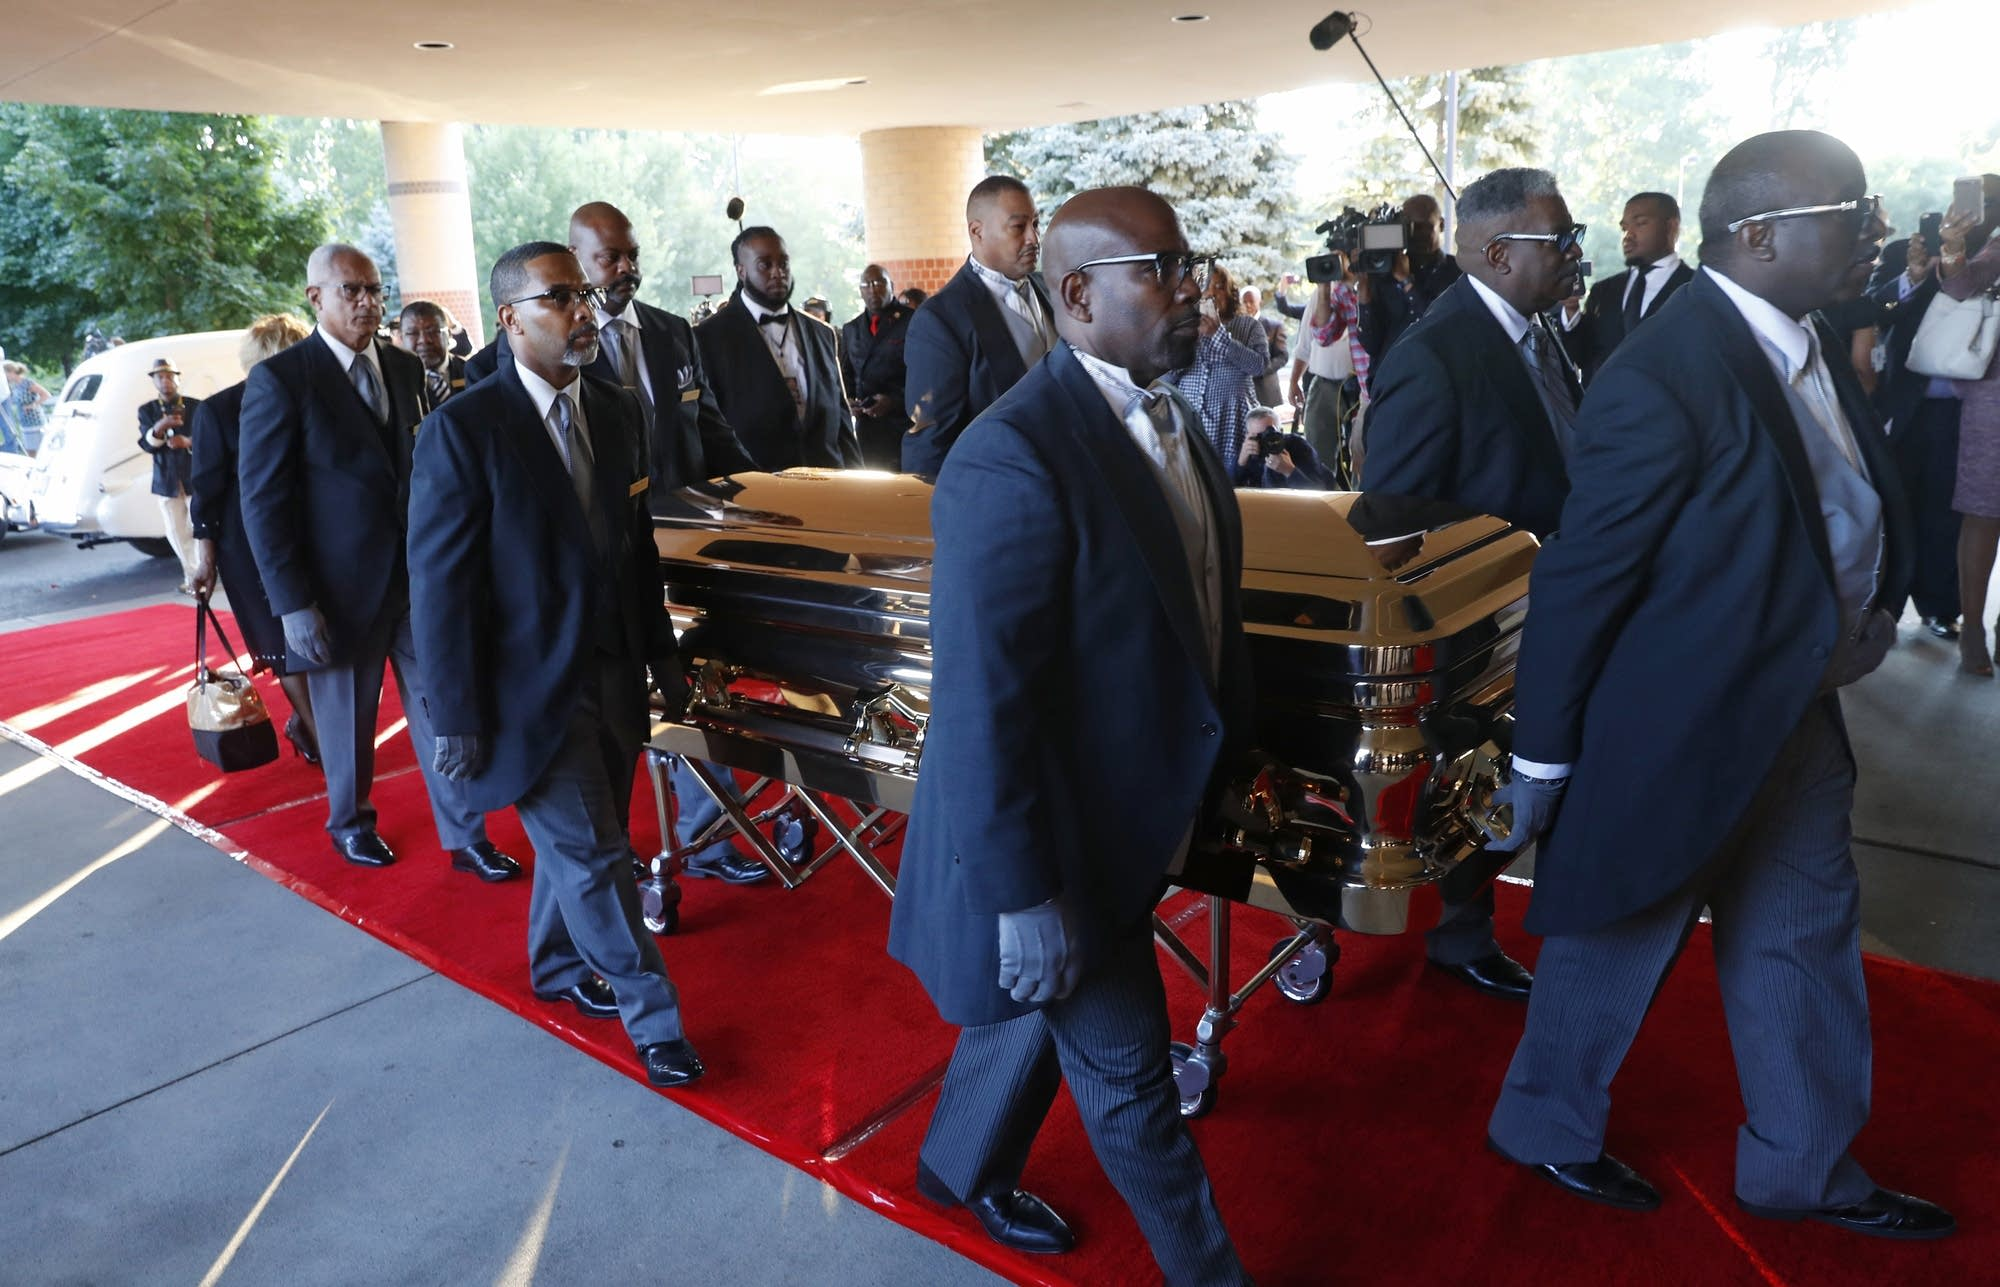 Pallbearers carry the gold casket of legendary singer Aretha Franklin.